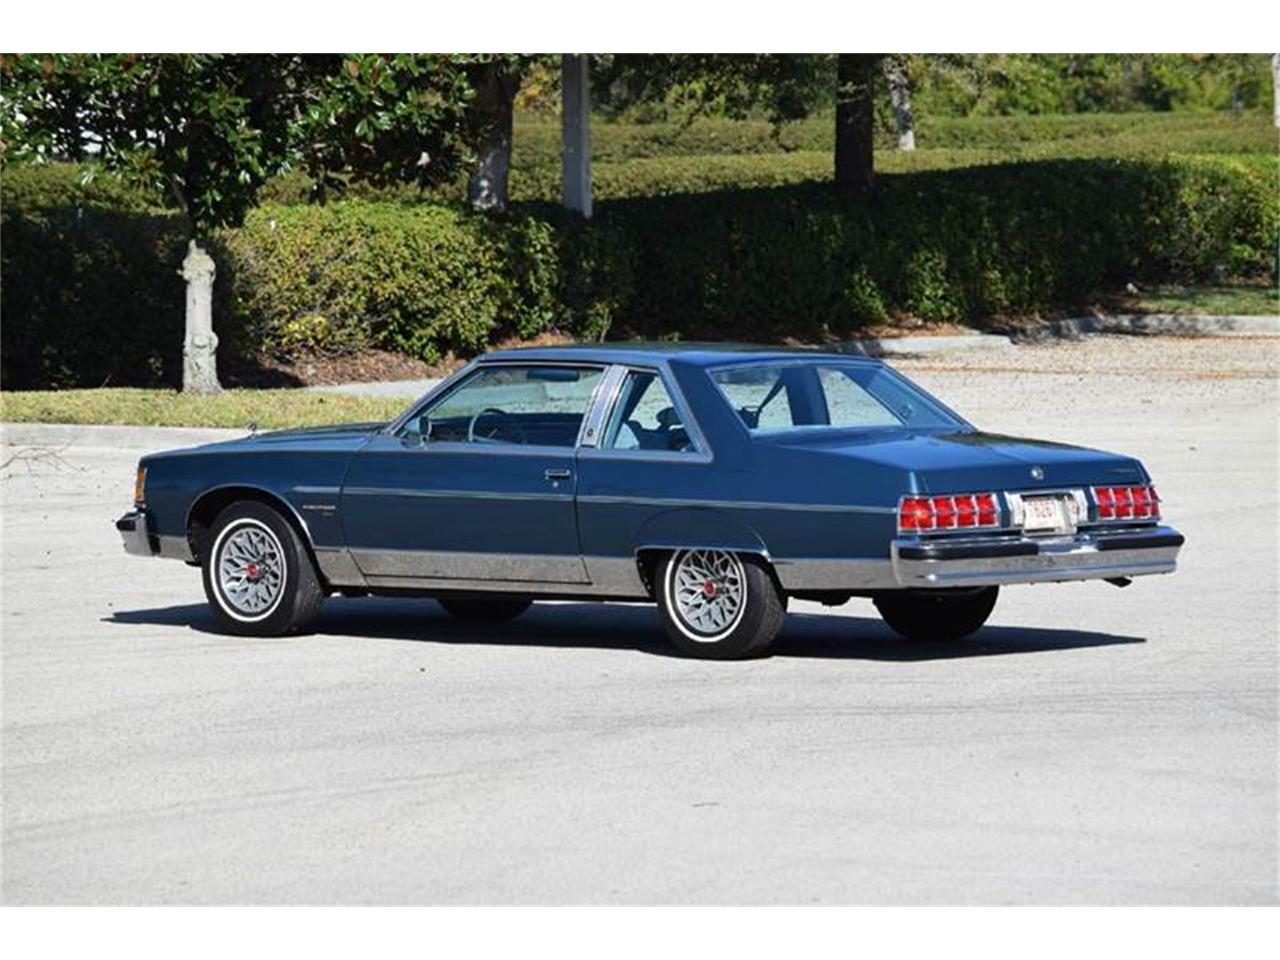 Large Picture of '78 Pontiac Bonneville located in Orlando Florida - $21,500.00 - K12V